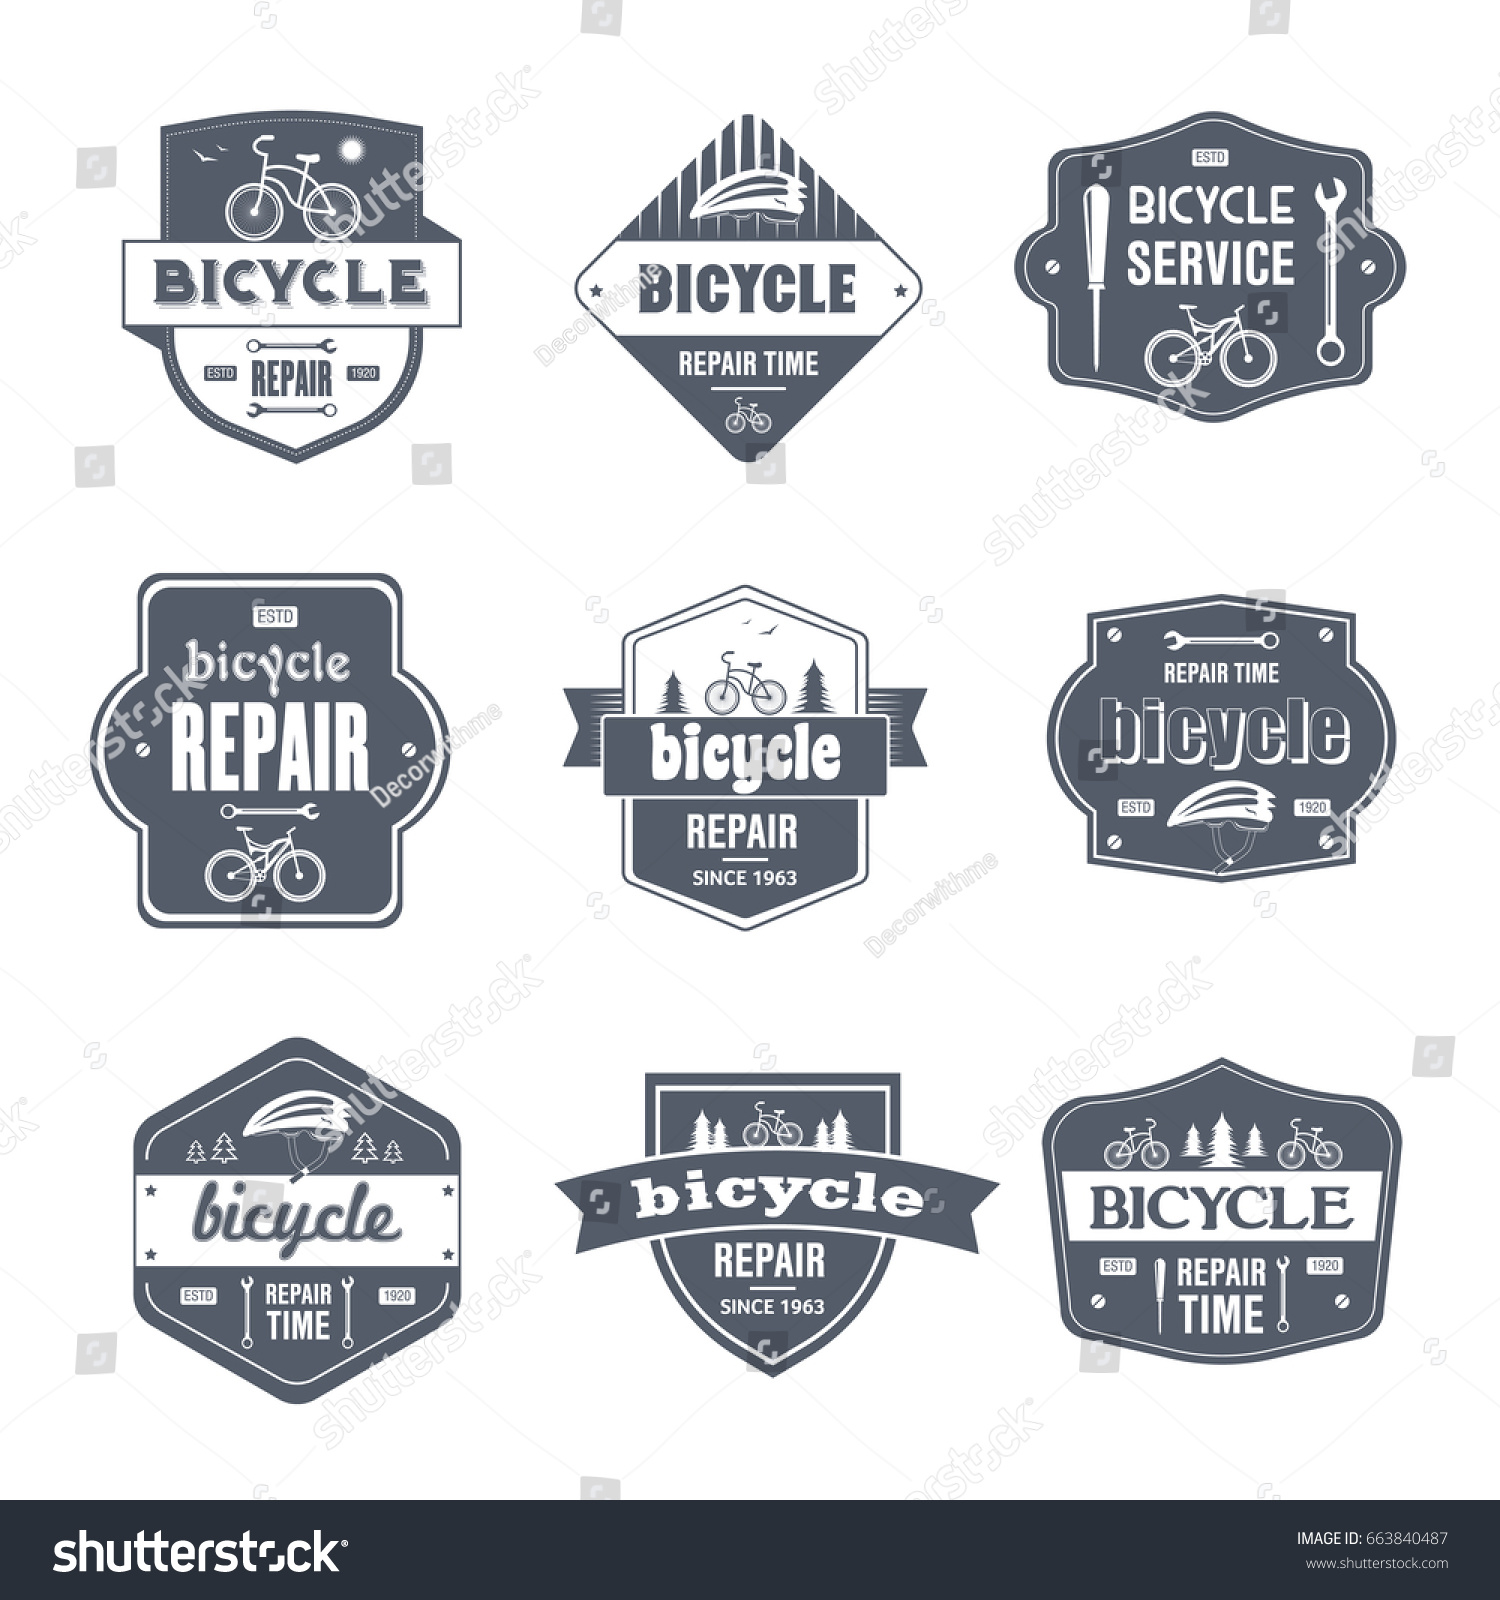 Bicycle repair vector set vintage template stock vector 663840487 bicycle repair vector set of vintage template logo insignias old fashion style emblems biocorpaavc Images